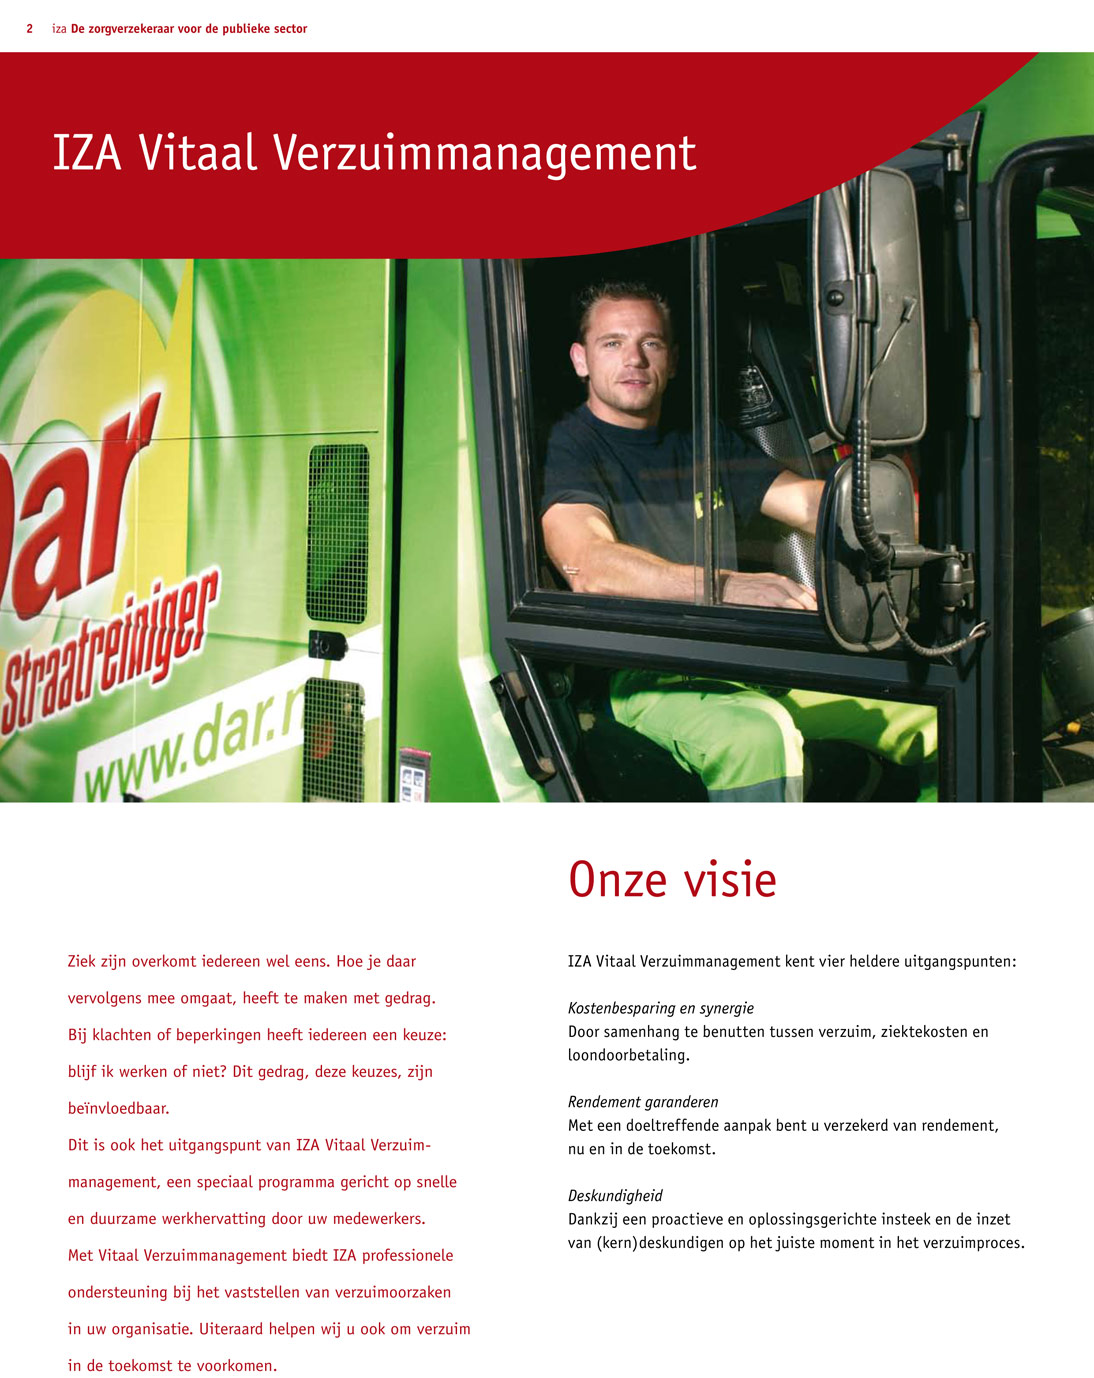 IZA_Verzuimmanagement_web-2.jpg